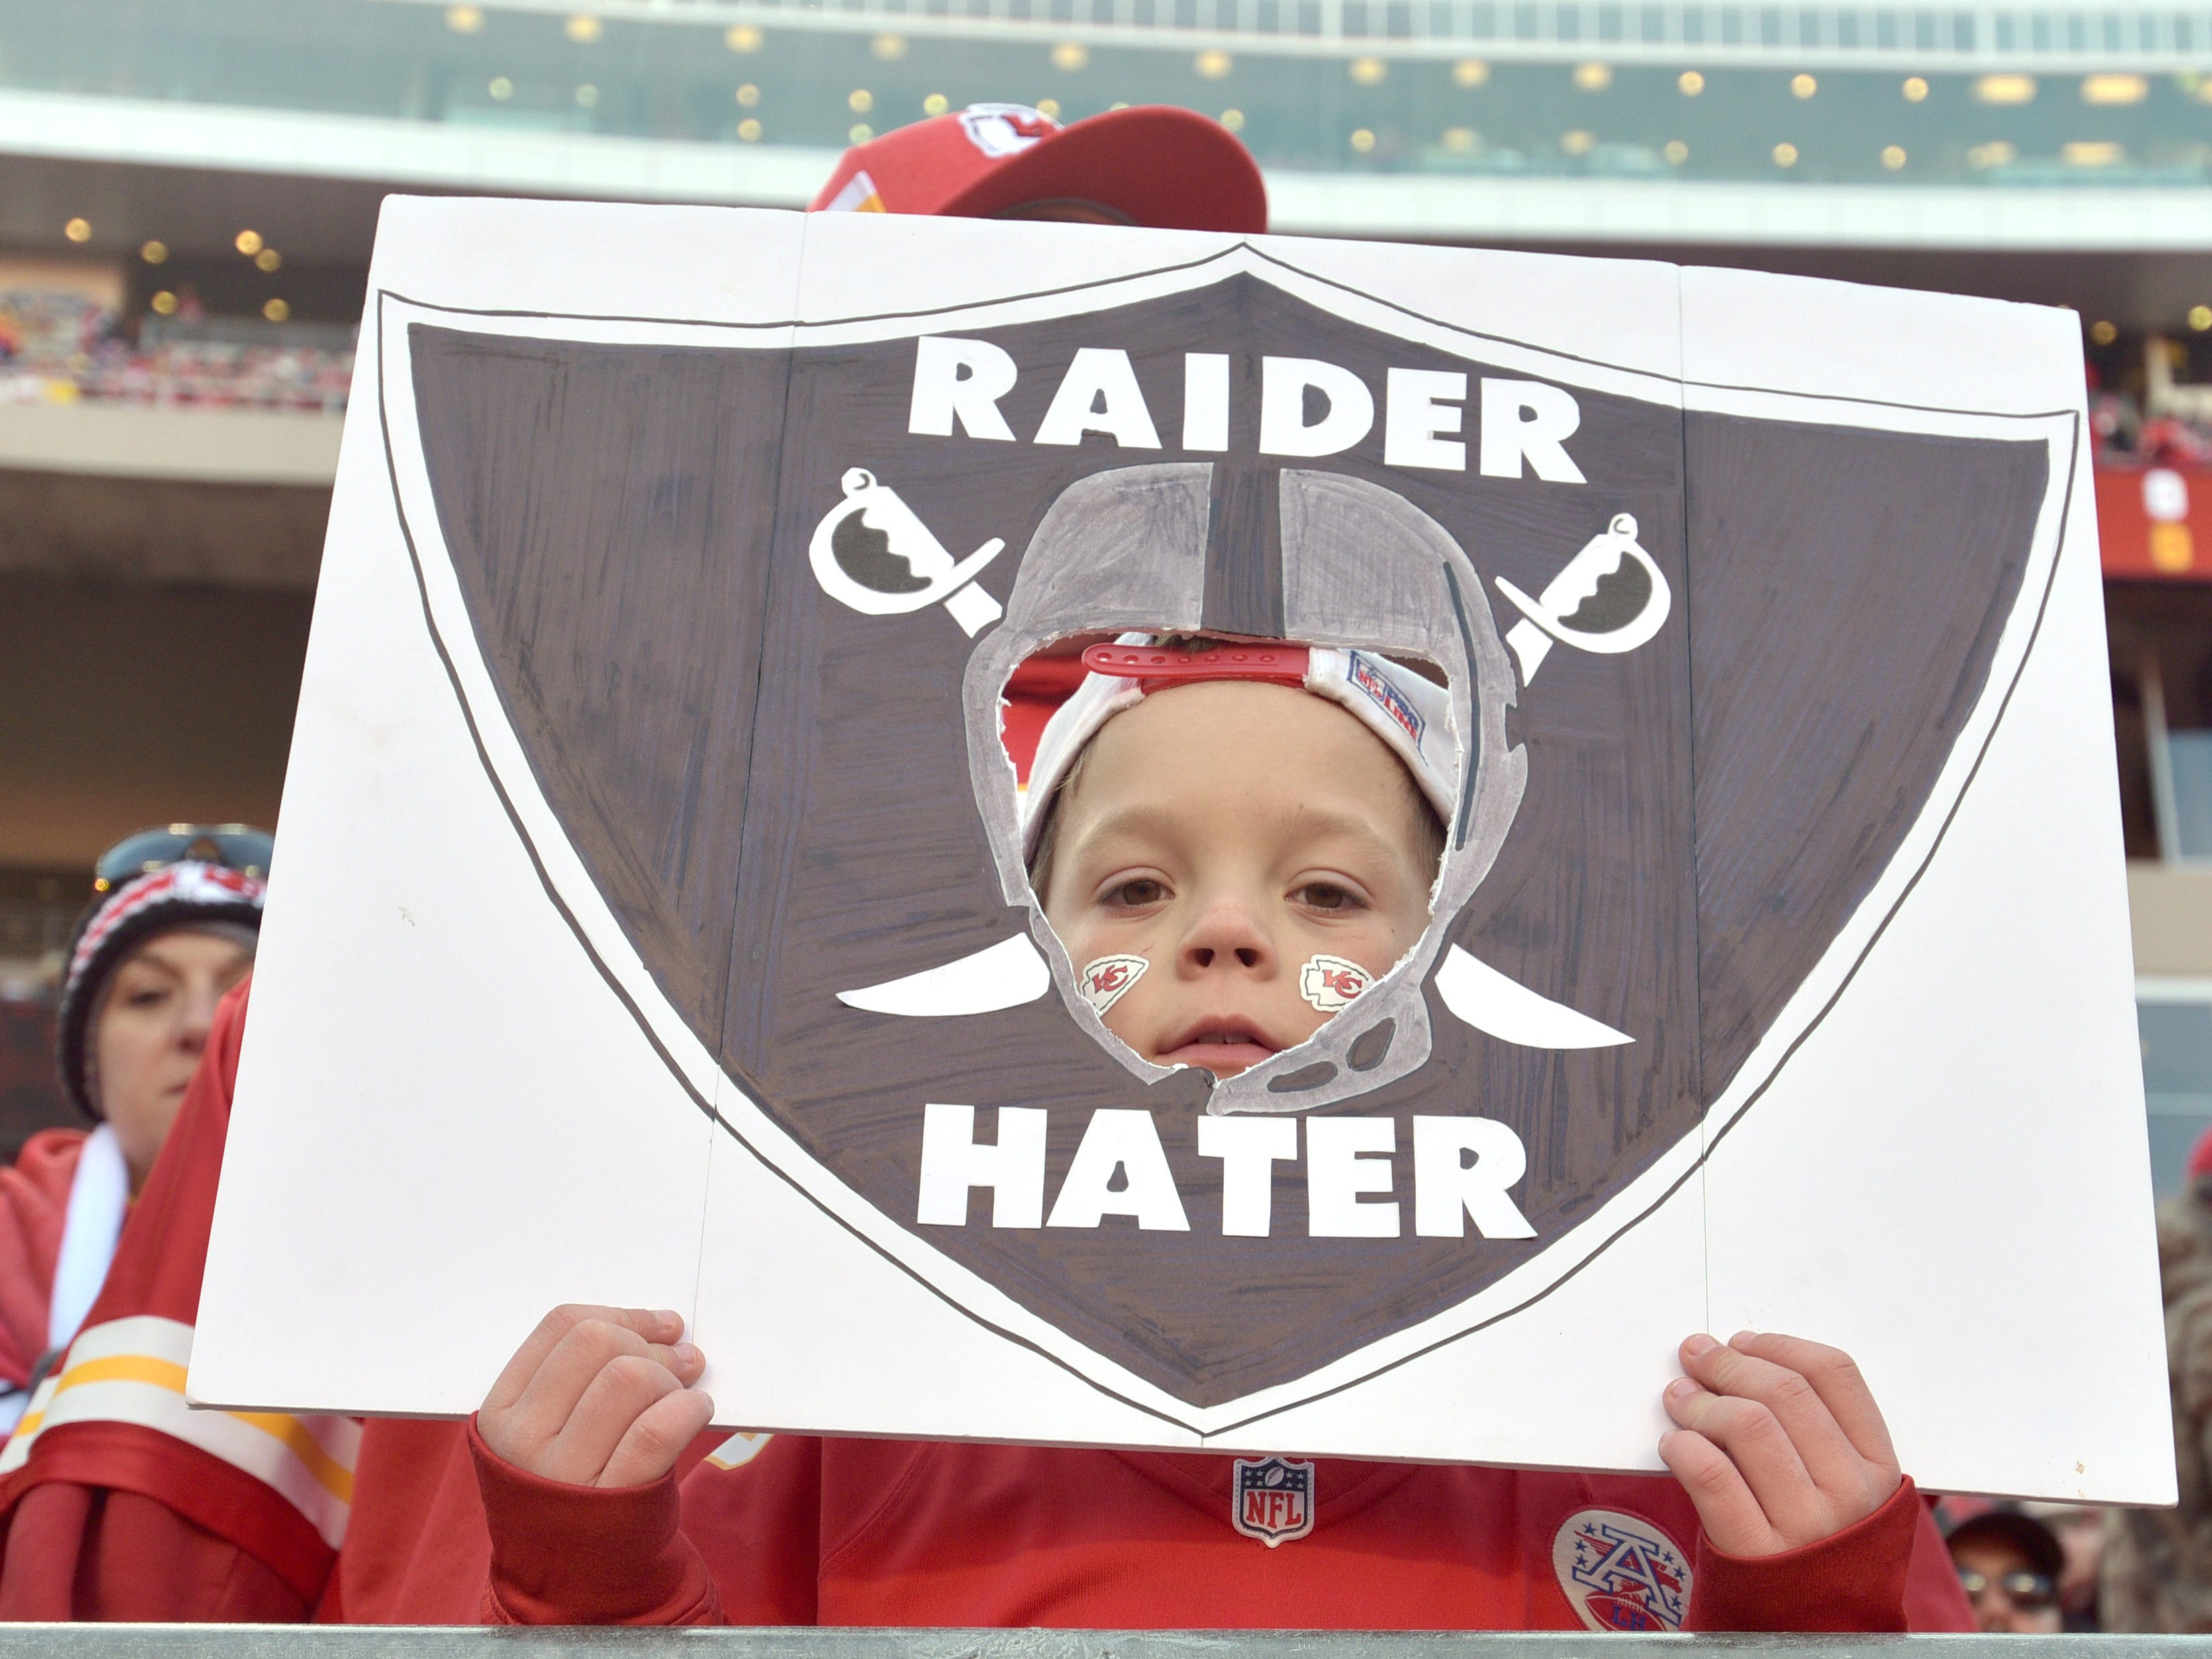 A young Kansas City Chiefs fan shows his support before a game against the Oakland Raiders at Arrowhead Stadium.